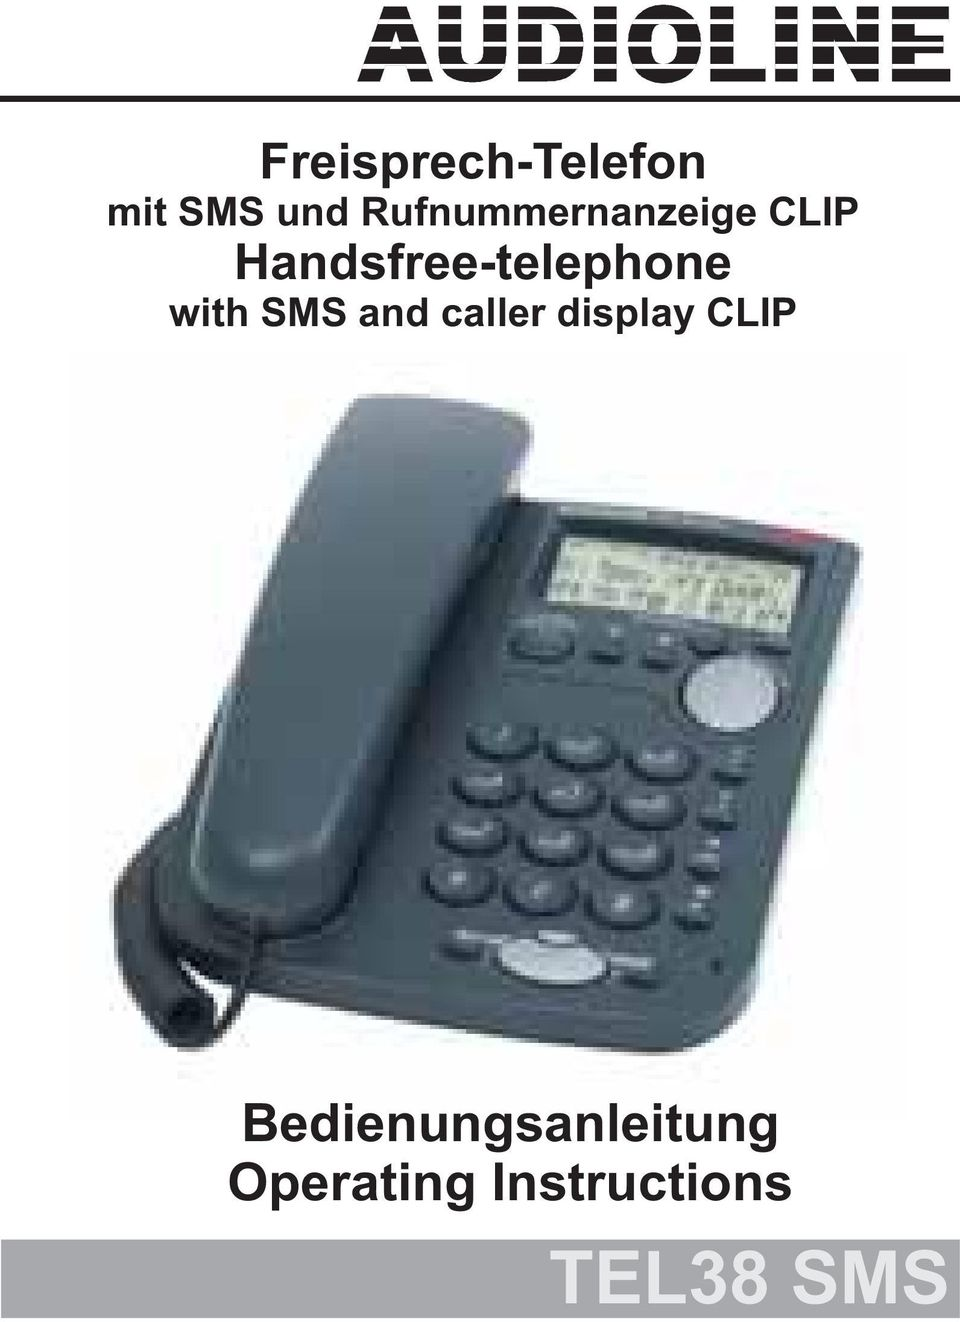 Handsfree-telephone with SMS and caller